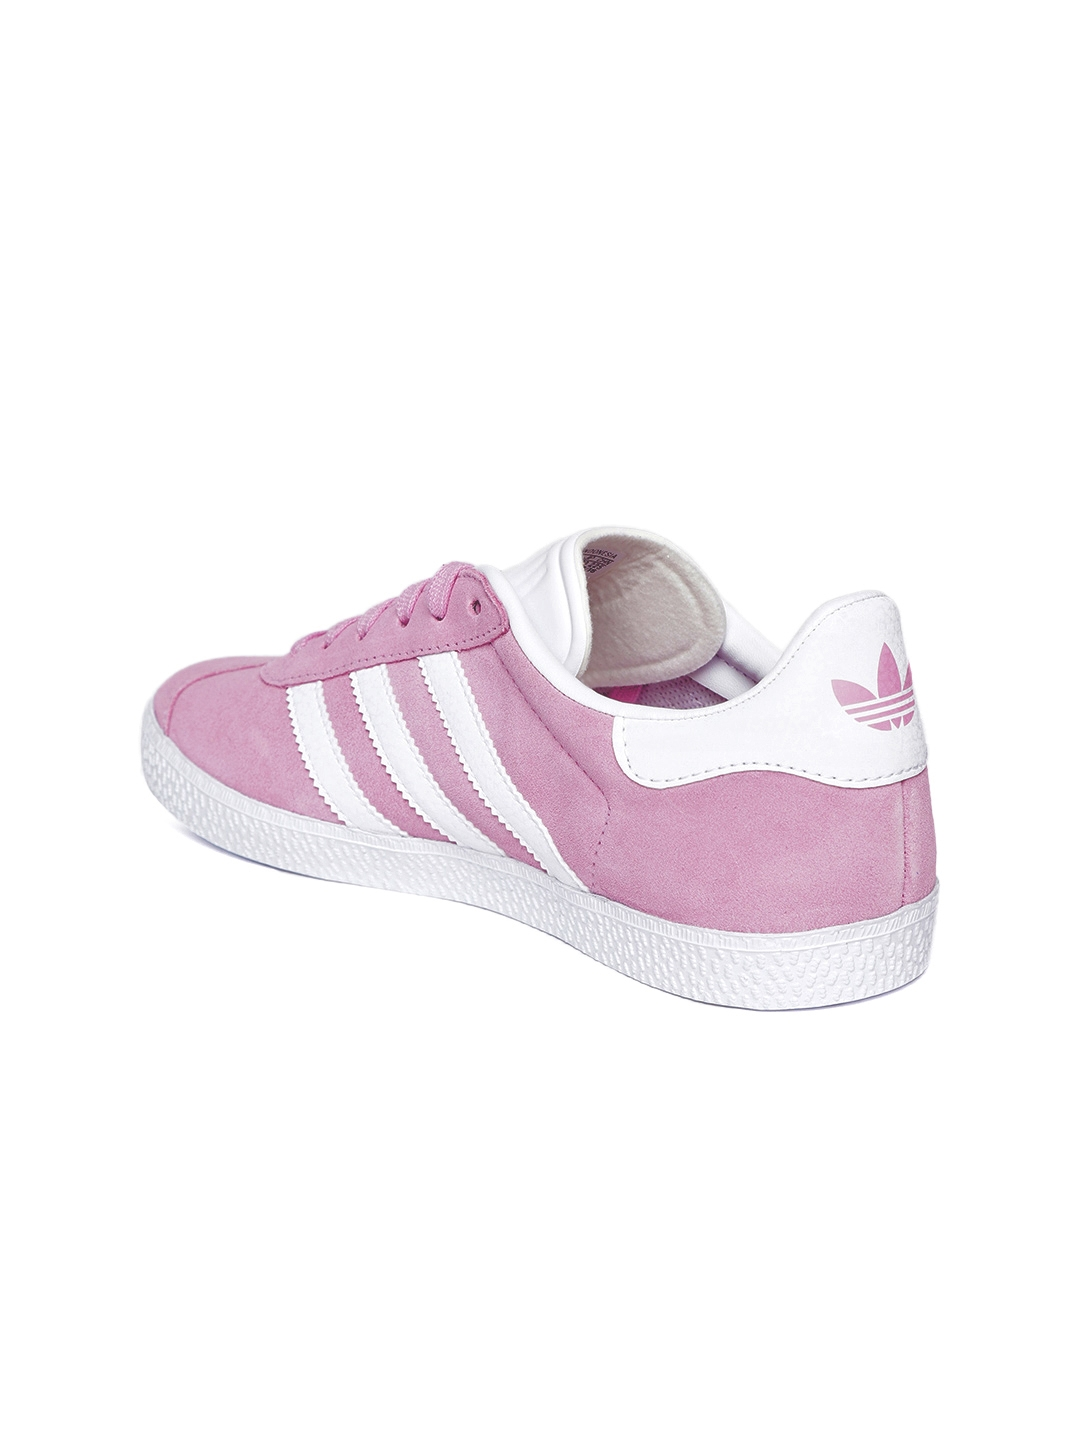 9a669900c97fa8 Buy ADIDAS Originals Kids Pink Gazelle Suede Sneakers - Casual Shoes ...